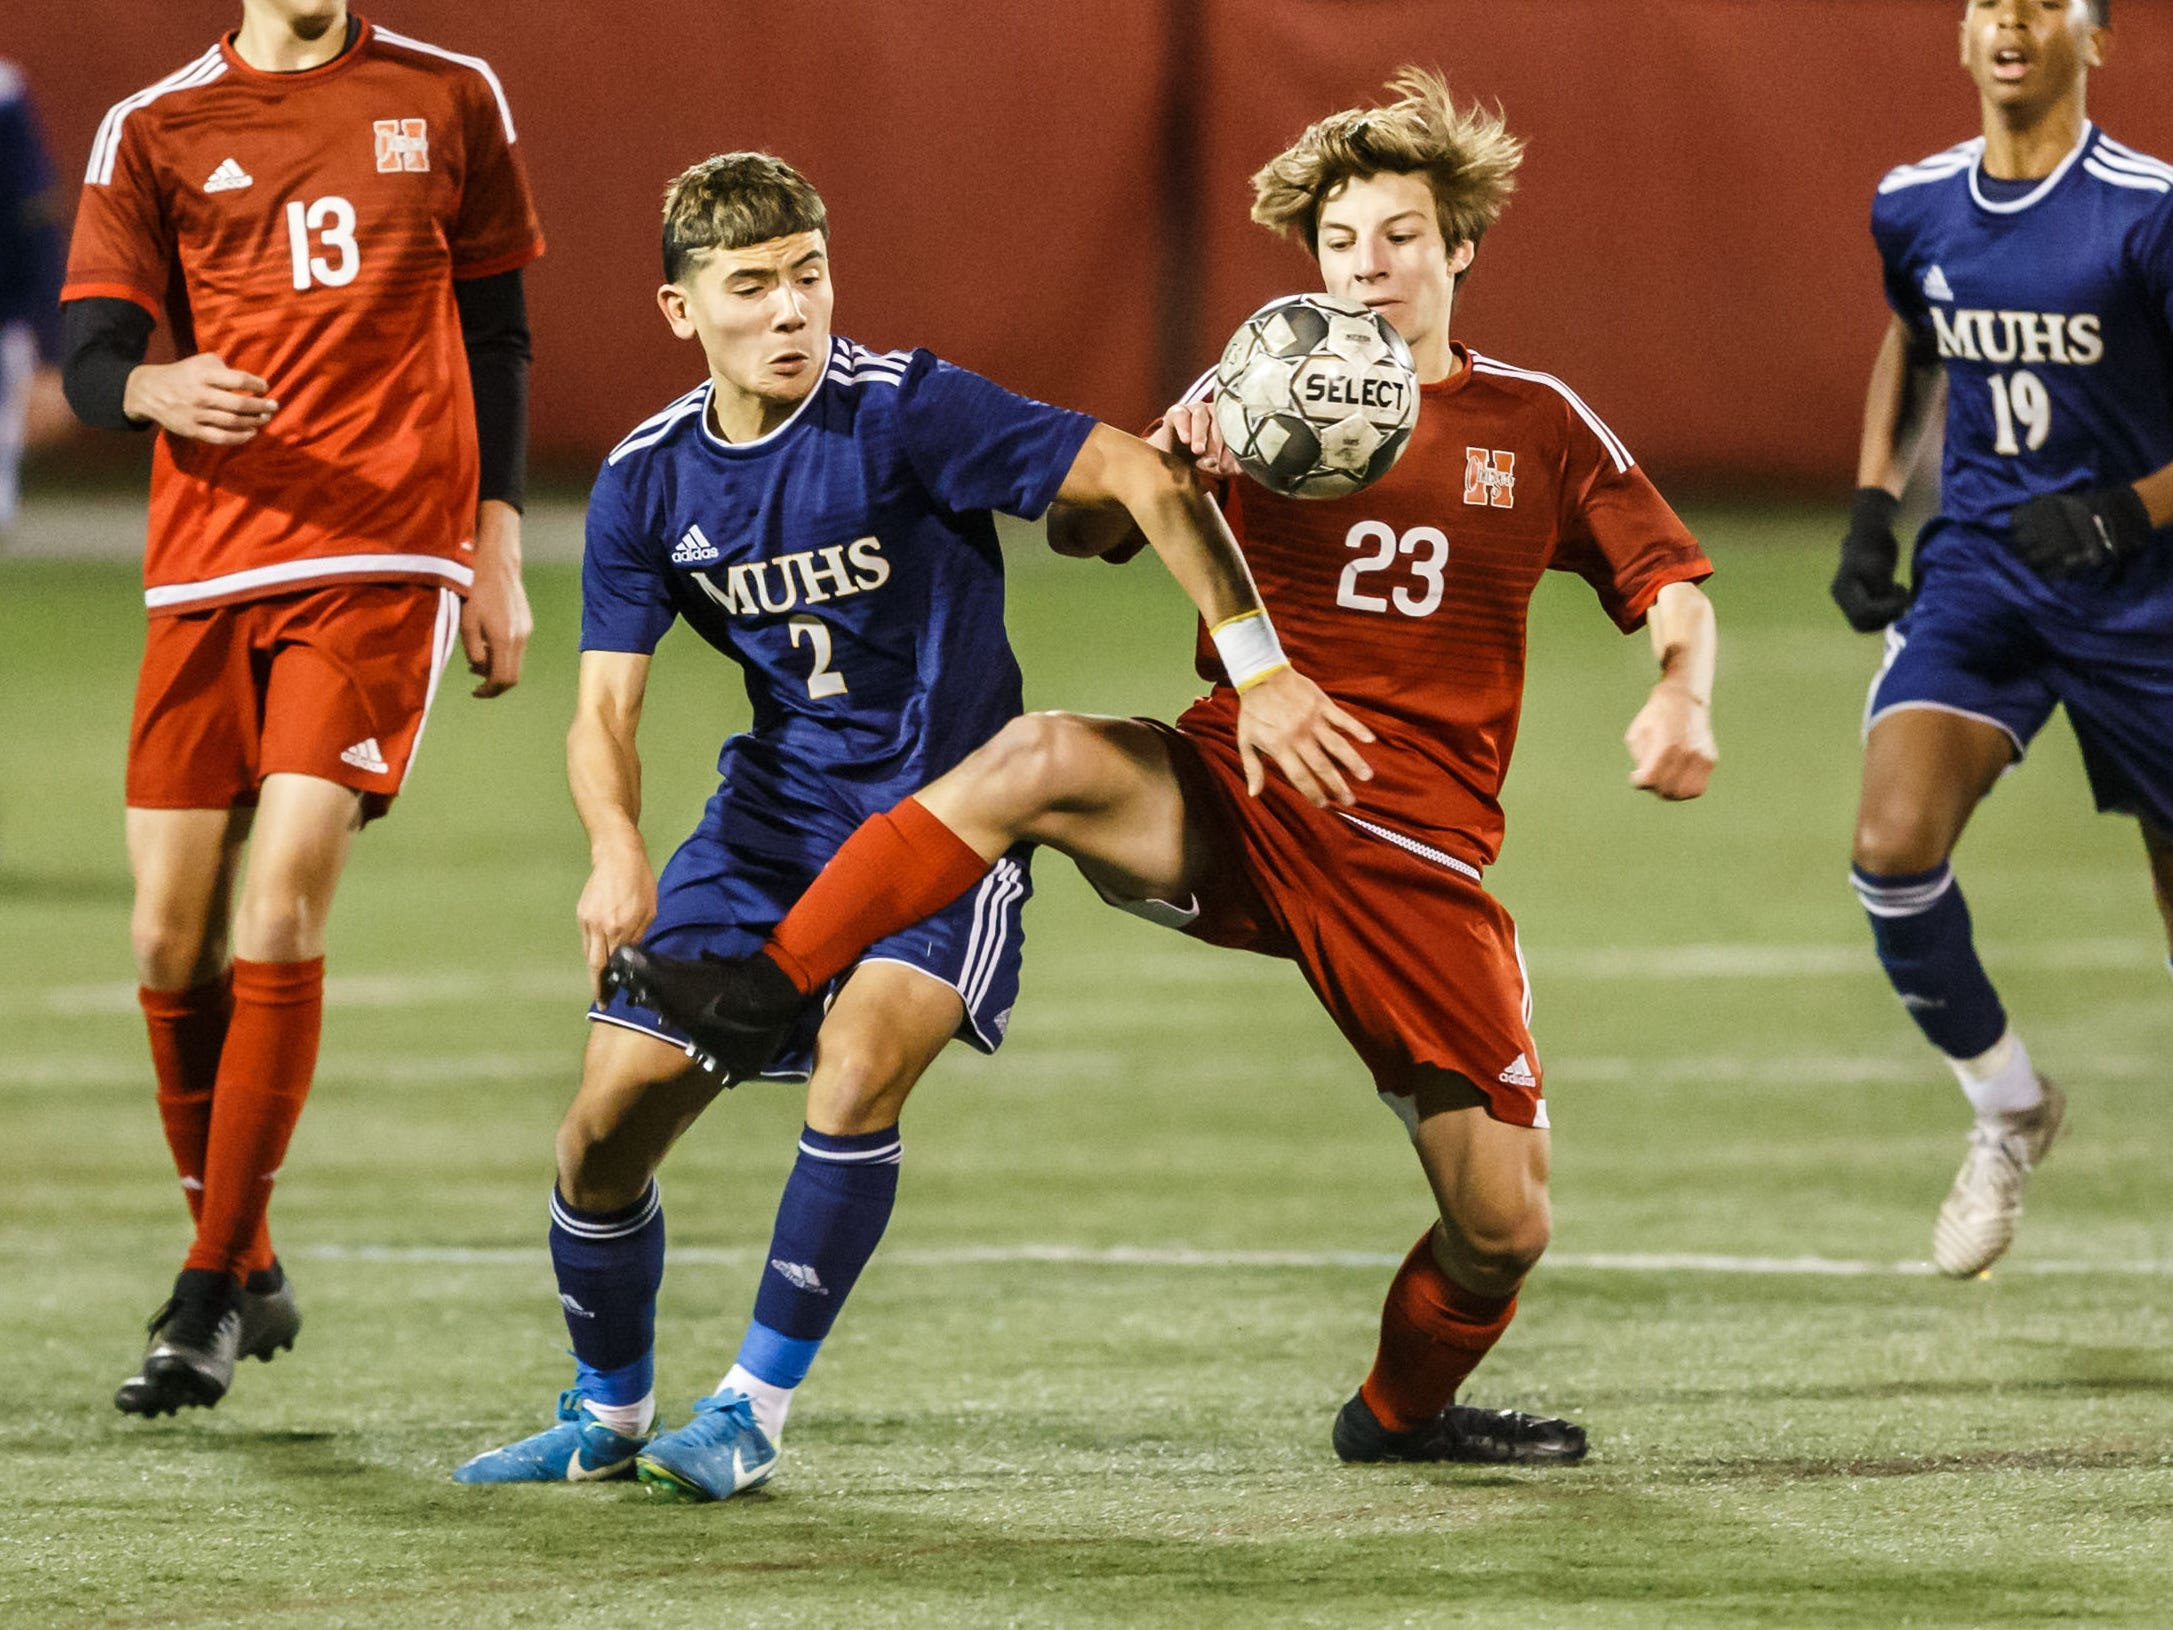 Sussex Hamilton sophomore Steven Arthur (23) battles for possession with Marquette's Miguel Herrera (2) during the WIAA Division 1 state soccer championship match Saturday.